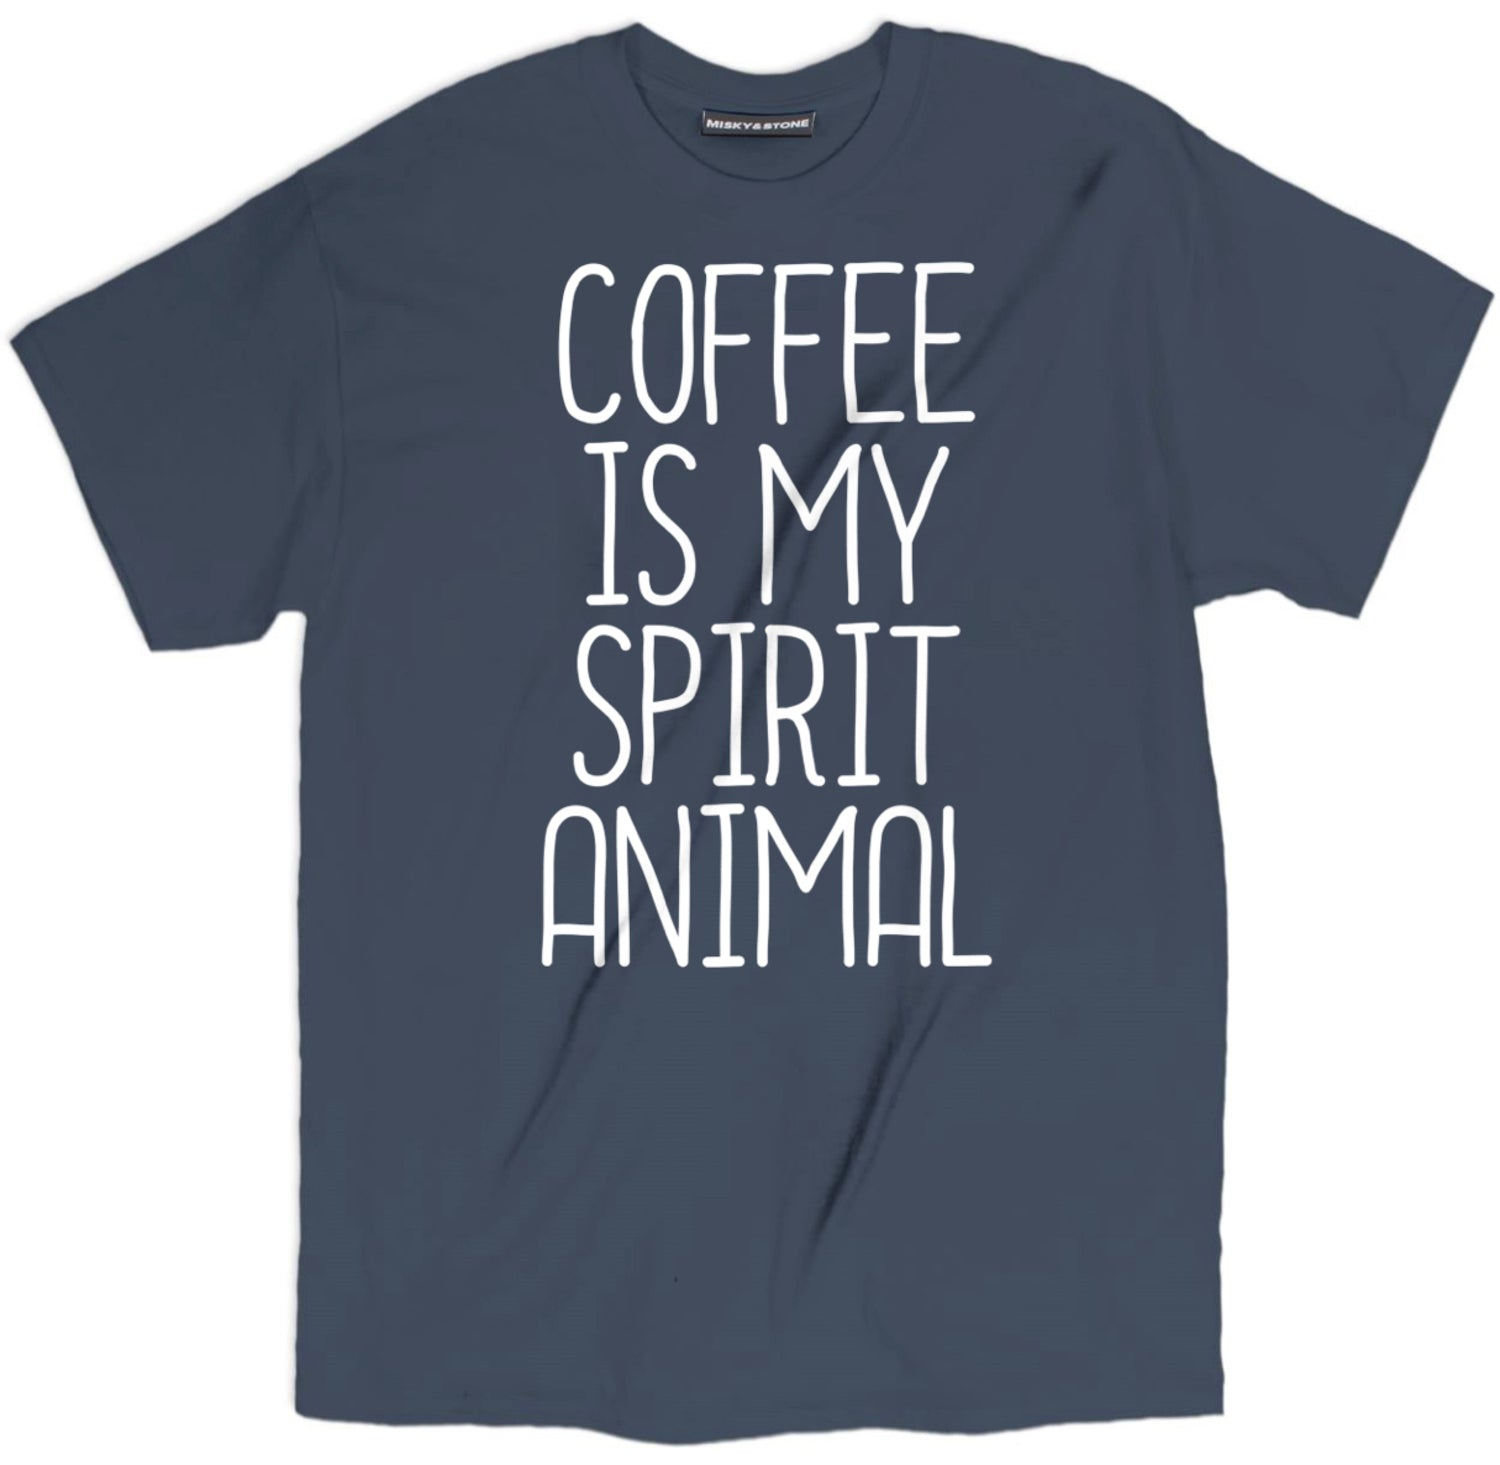 coffee shirts, but first coffee shirt, coffee tee shirts, i need coffee shirt, funny coffee shirts, ok but first coffee shirt, coffee graphic tee, coffee first shirt, but first coffee t shirt, coffee t shirt, ok but first coffee tee, coffee first t shirts, cute coffee shirts